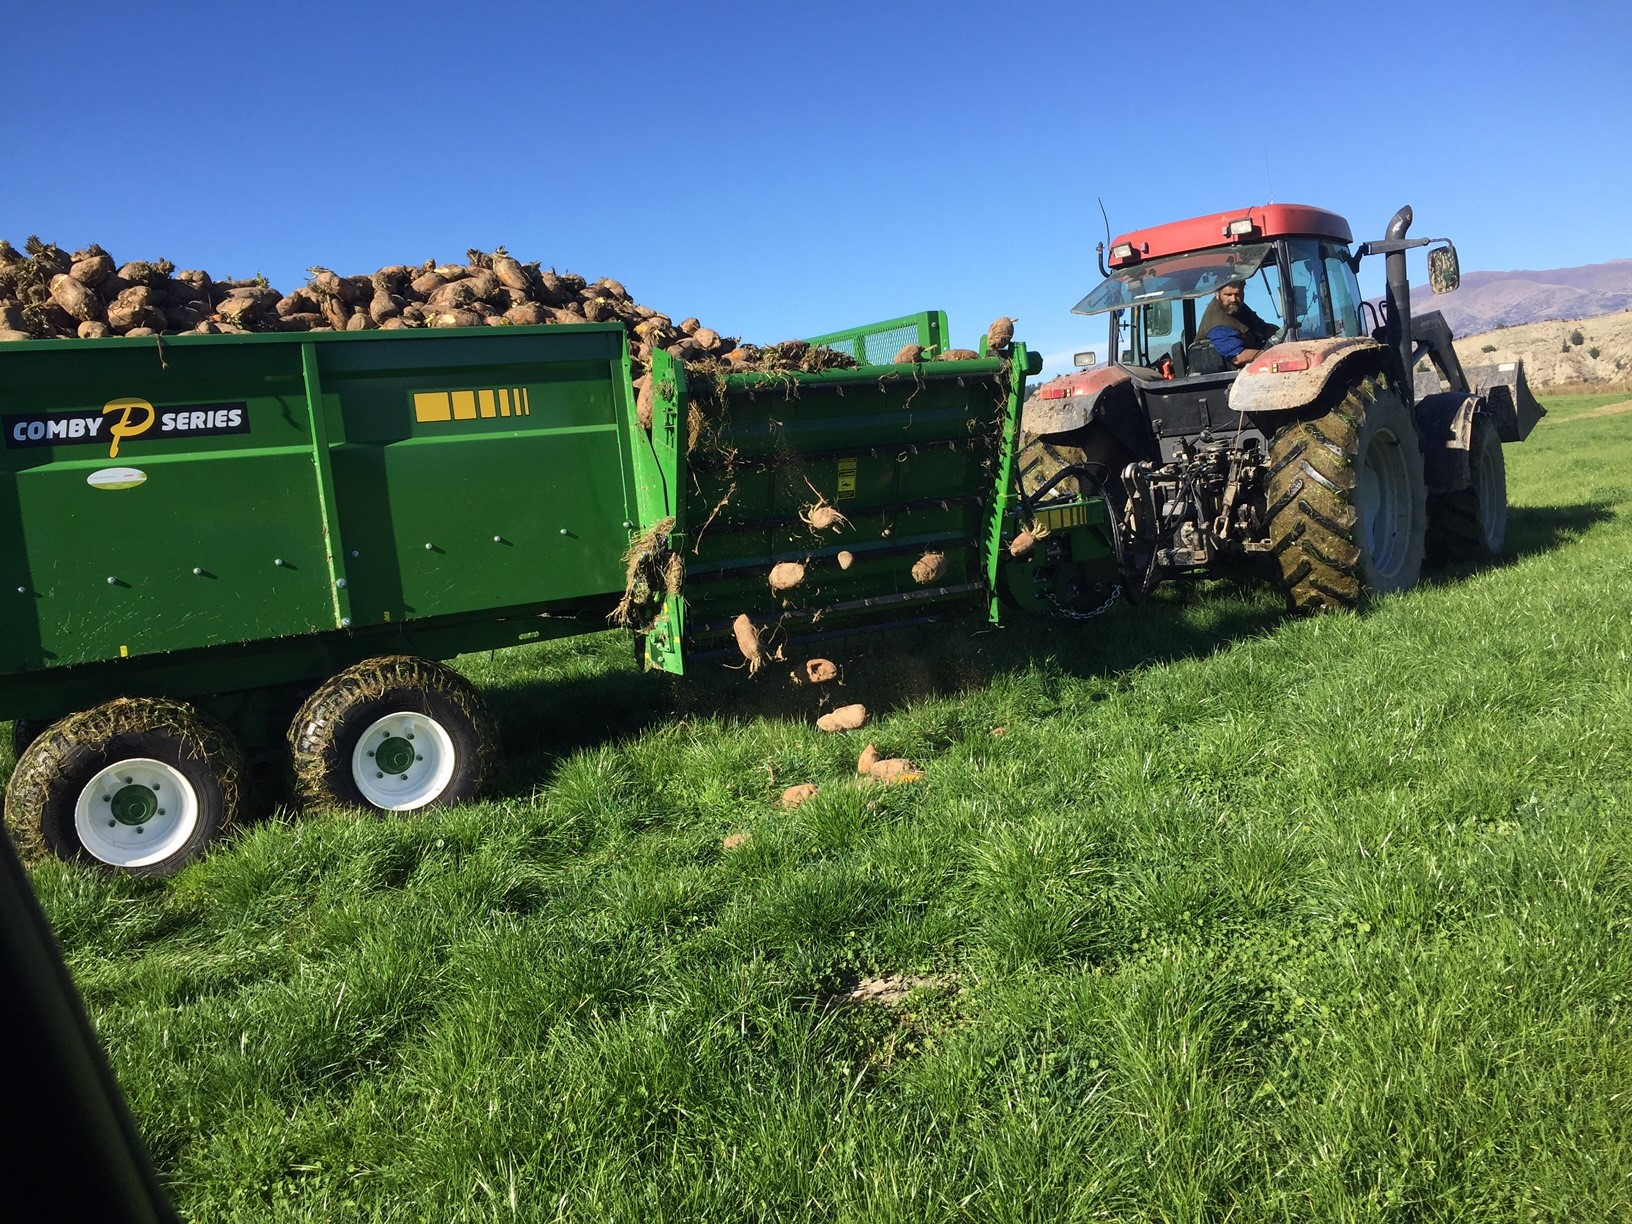 Comby PR Feeding out a load of Fodder beet-2.jpg